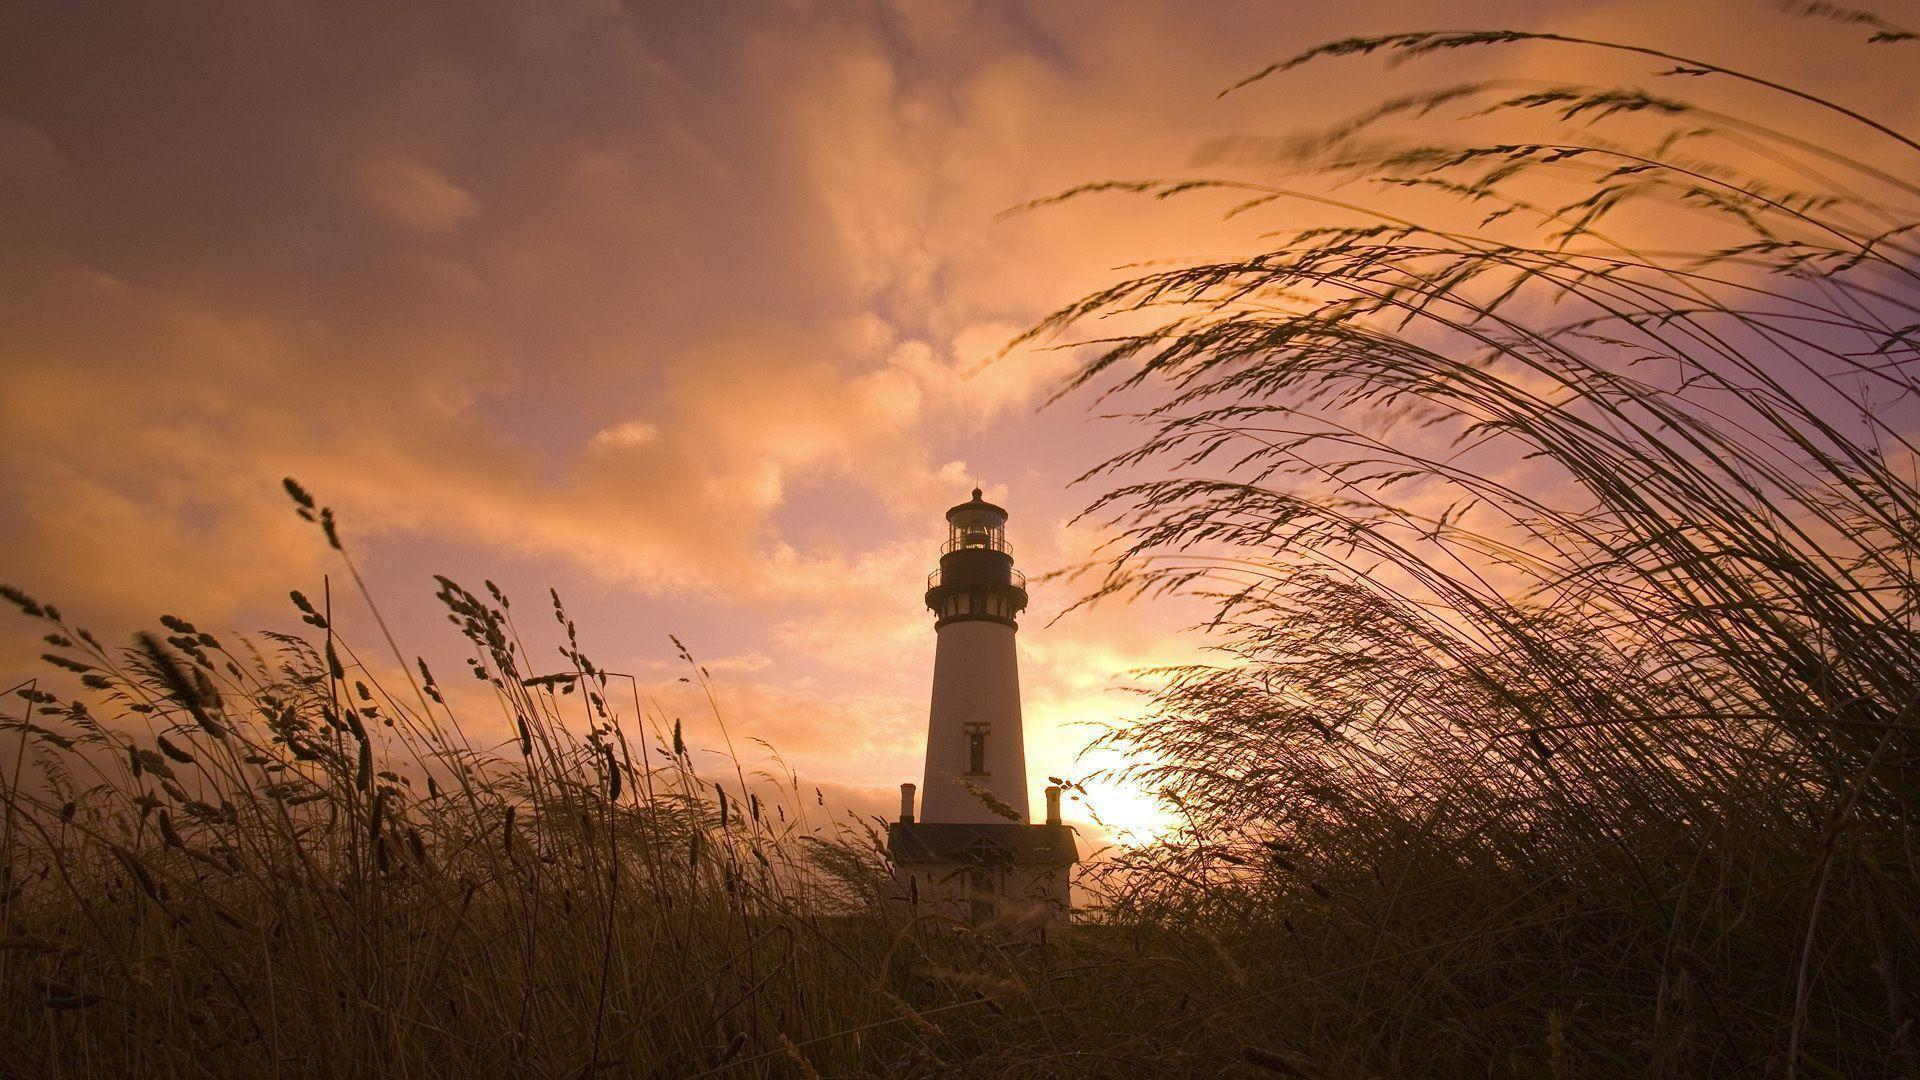 Lighthouse Wallpapers 5615 1920x1080 px